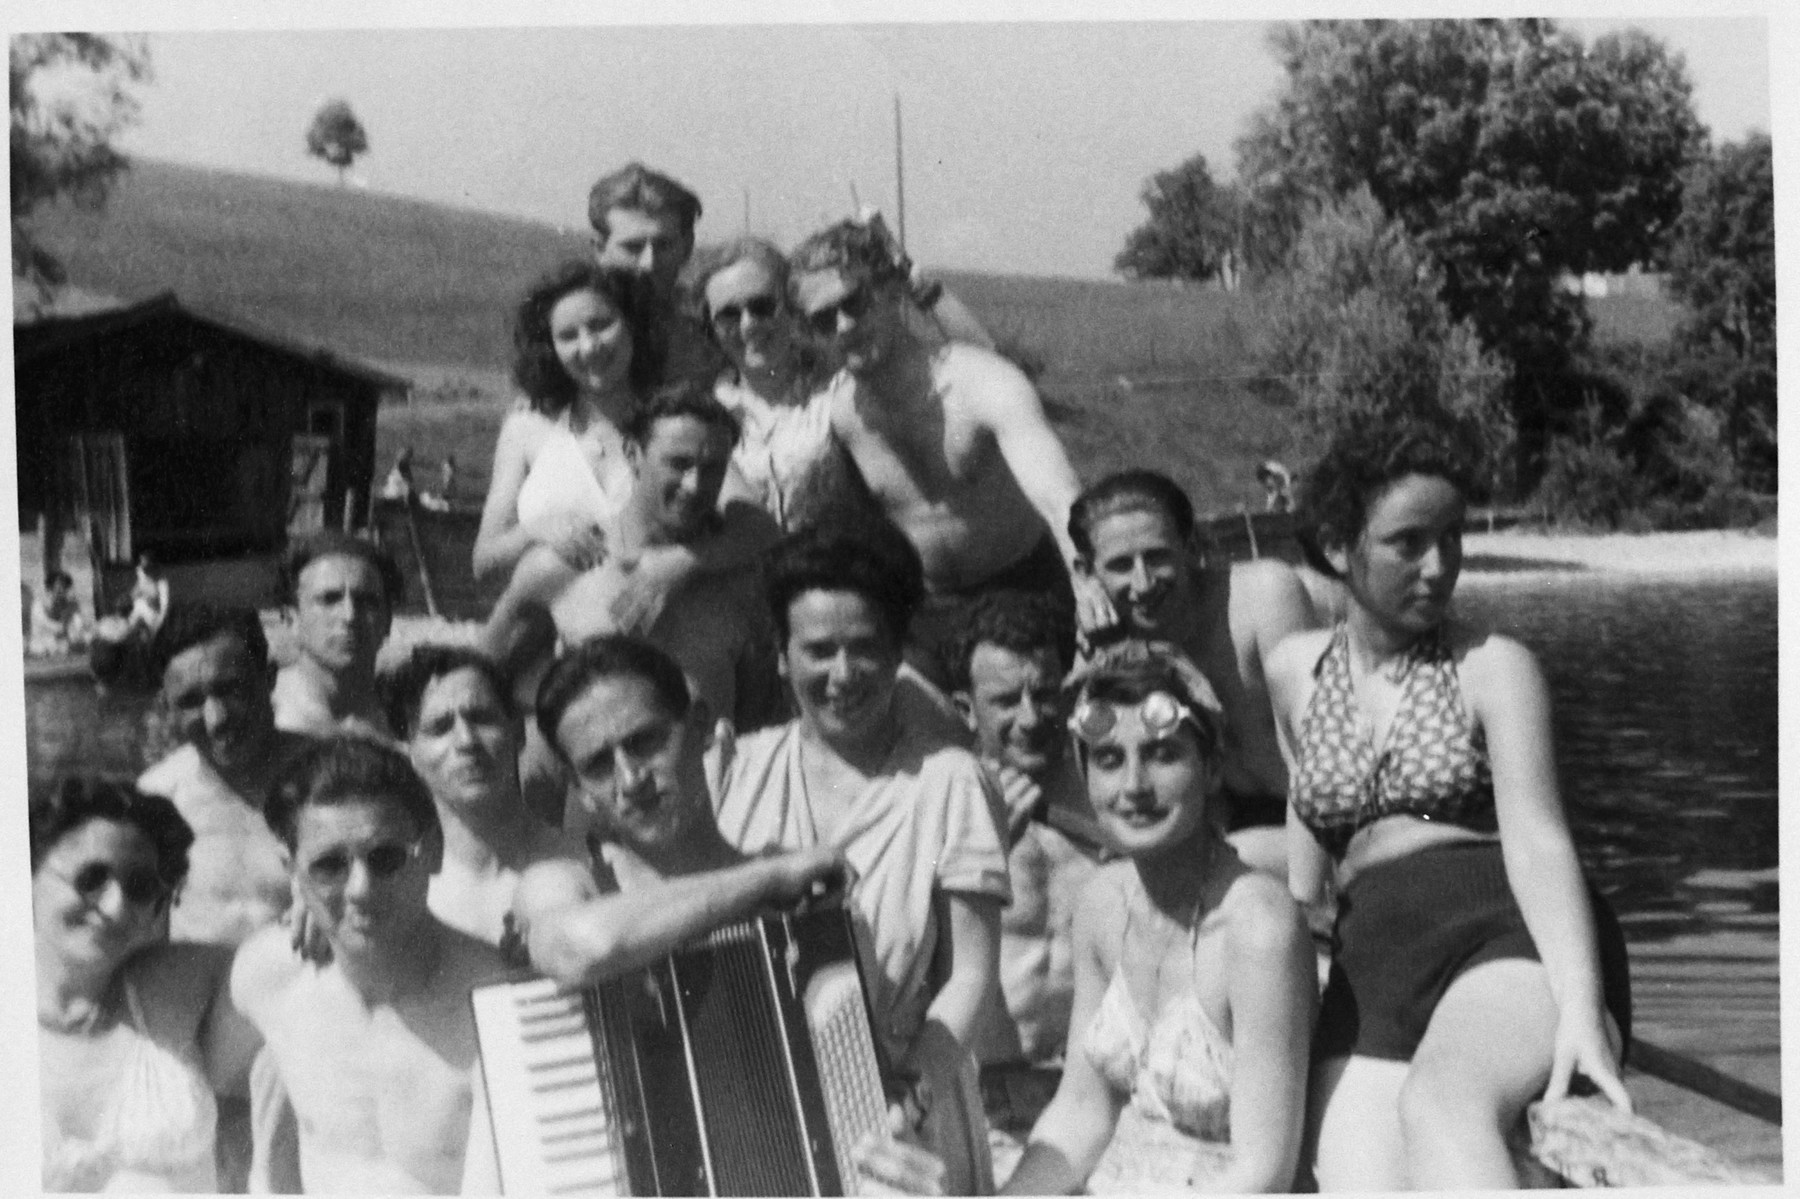 A group or Bricha activitists gathers by the shore of a lake or river in their bathing suits.  One is playing the accordian.  Among those pictured is Aba Gefen, top row, far right.